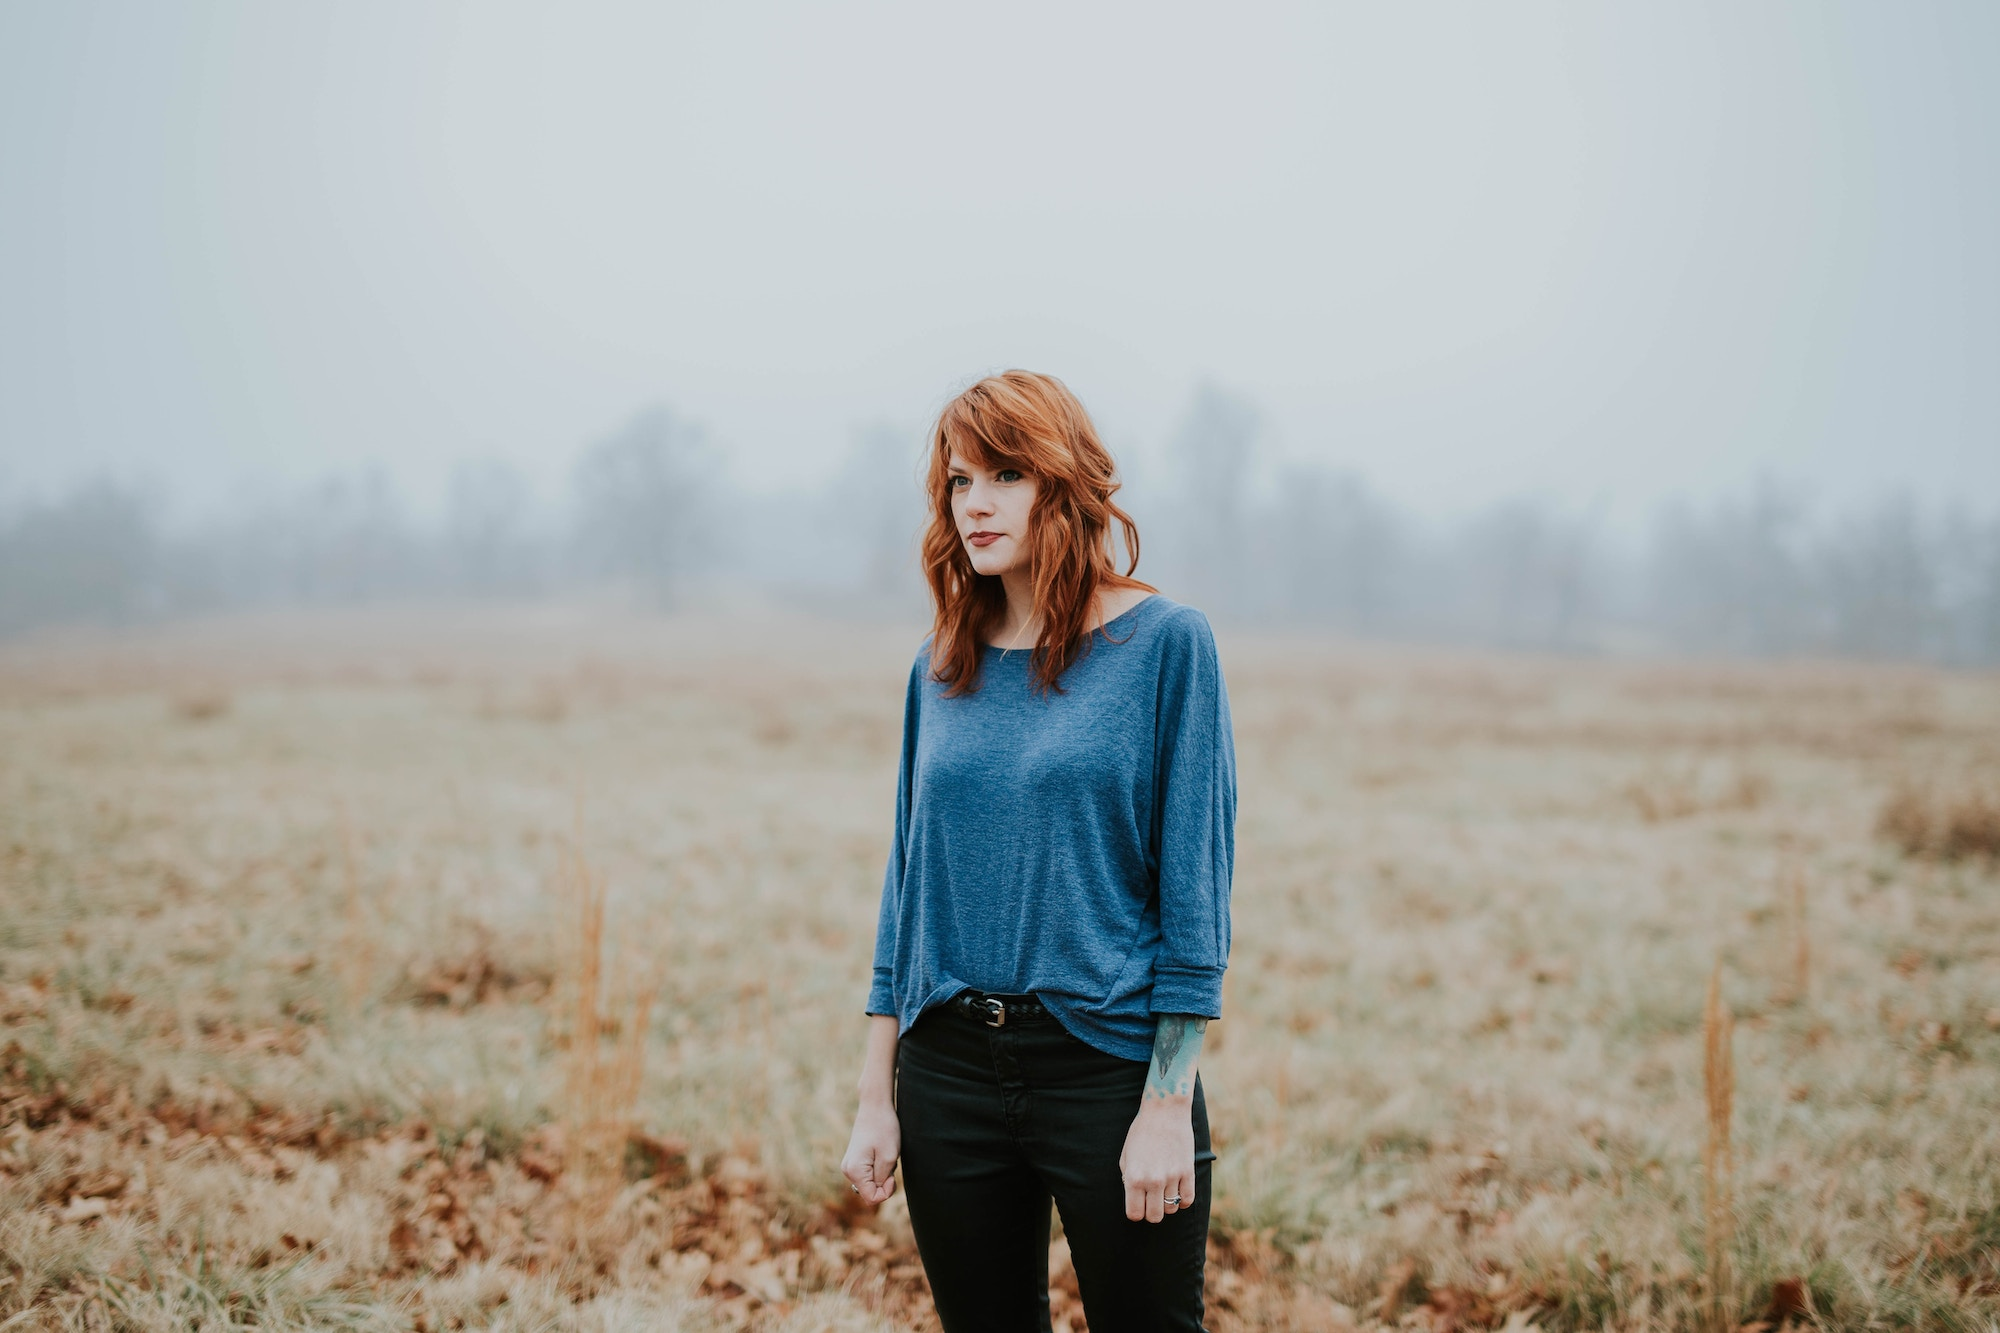 France country life: we tell you what it's like to live in France, like this woman, with red hair, wearing a vibrant blue top, standing in a misty field.